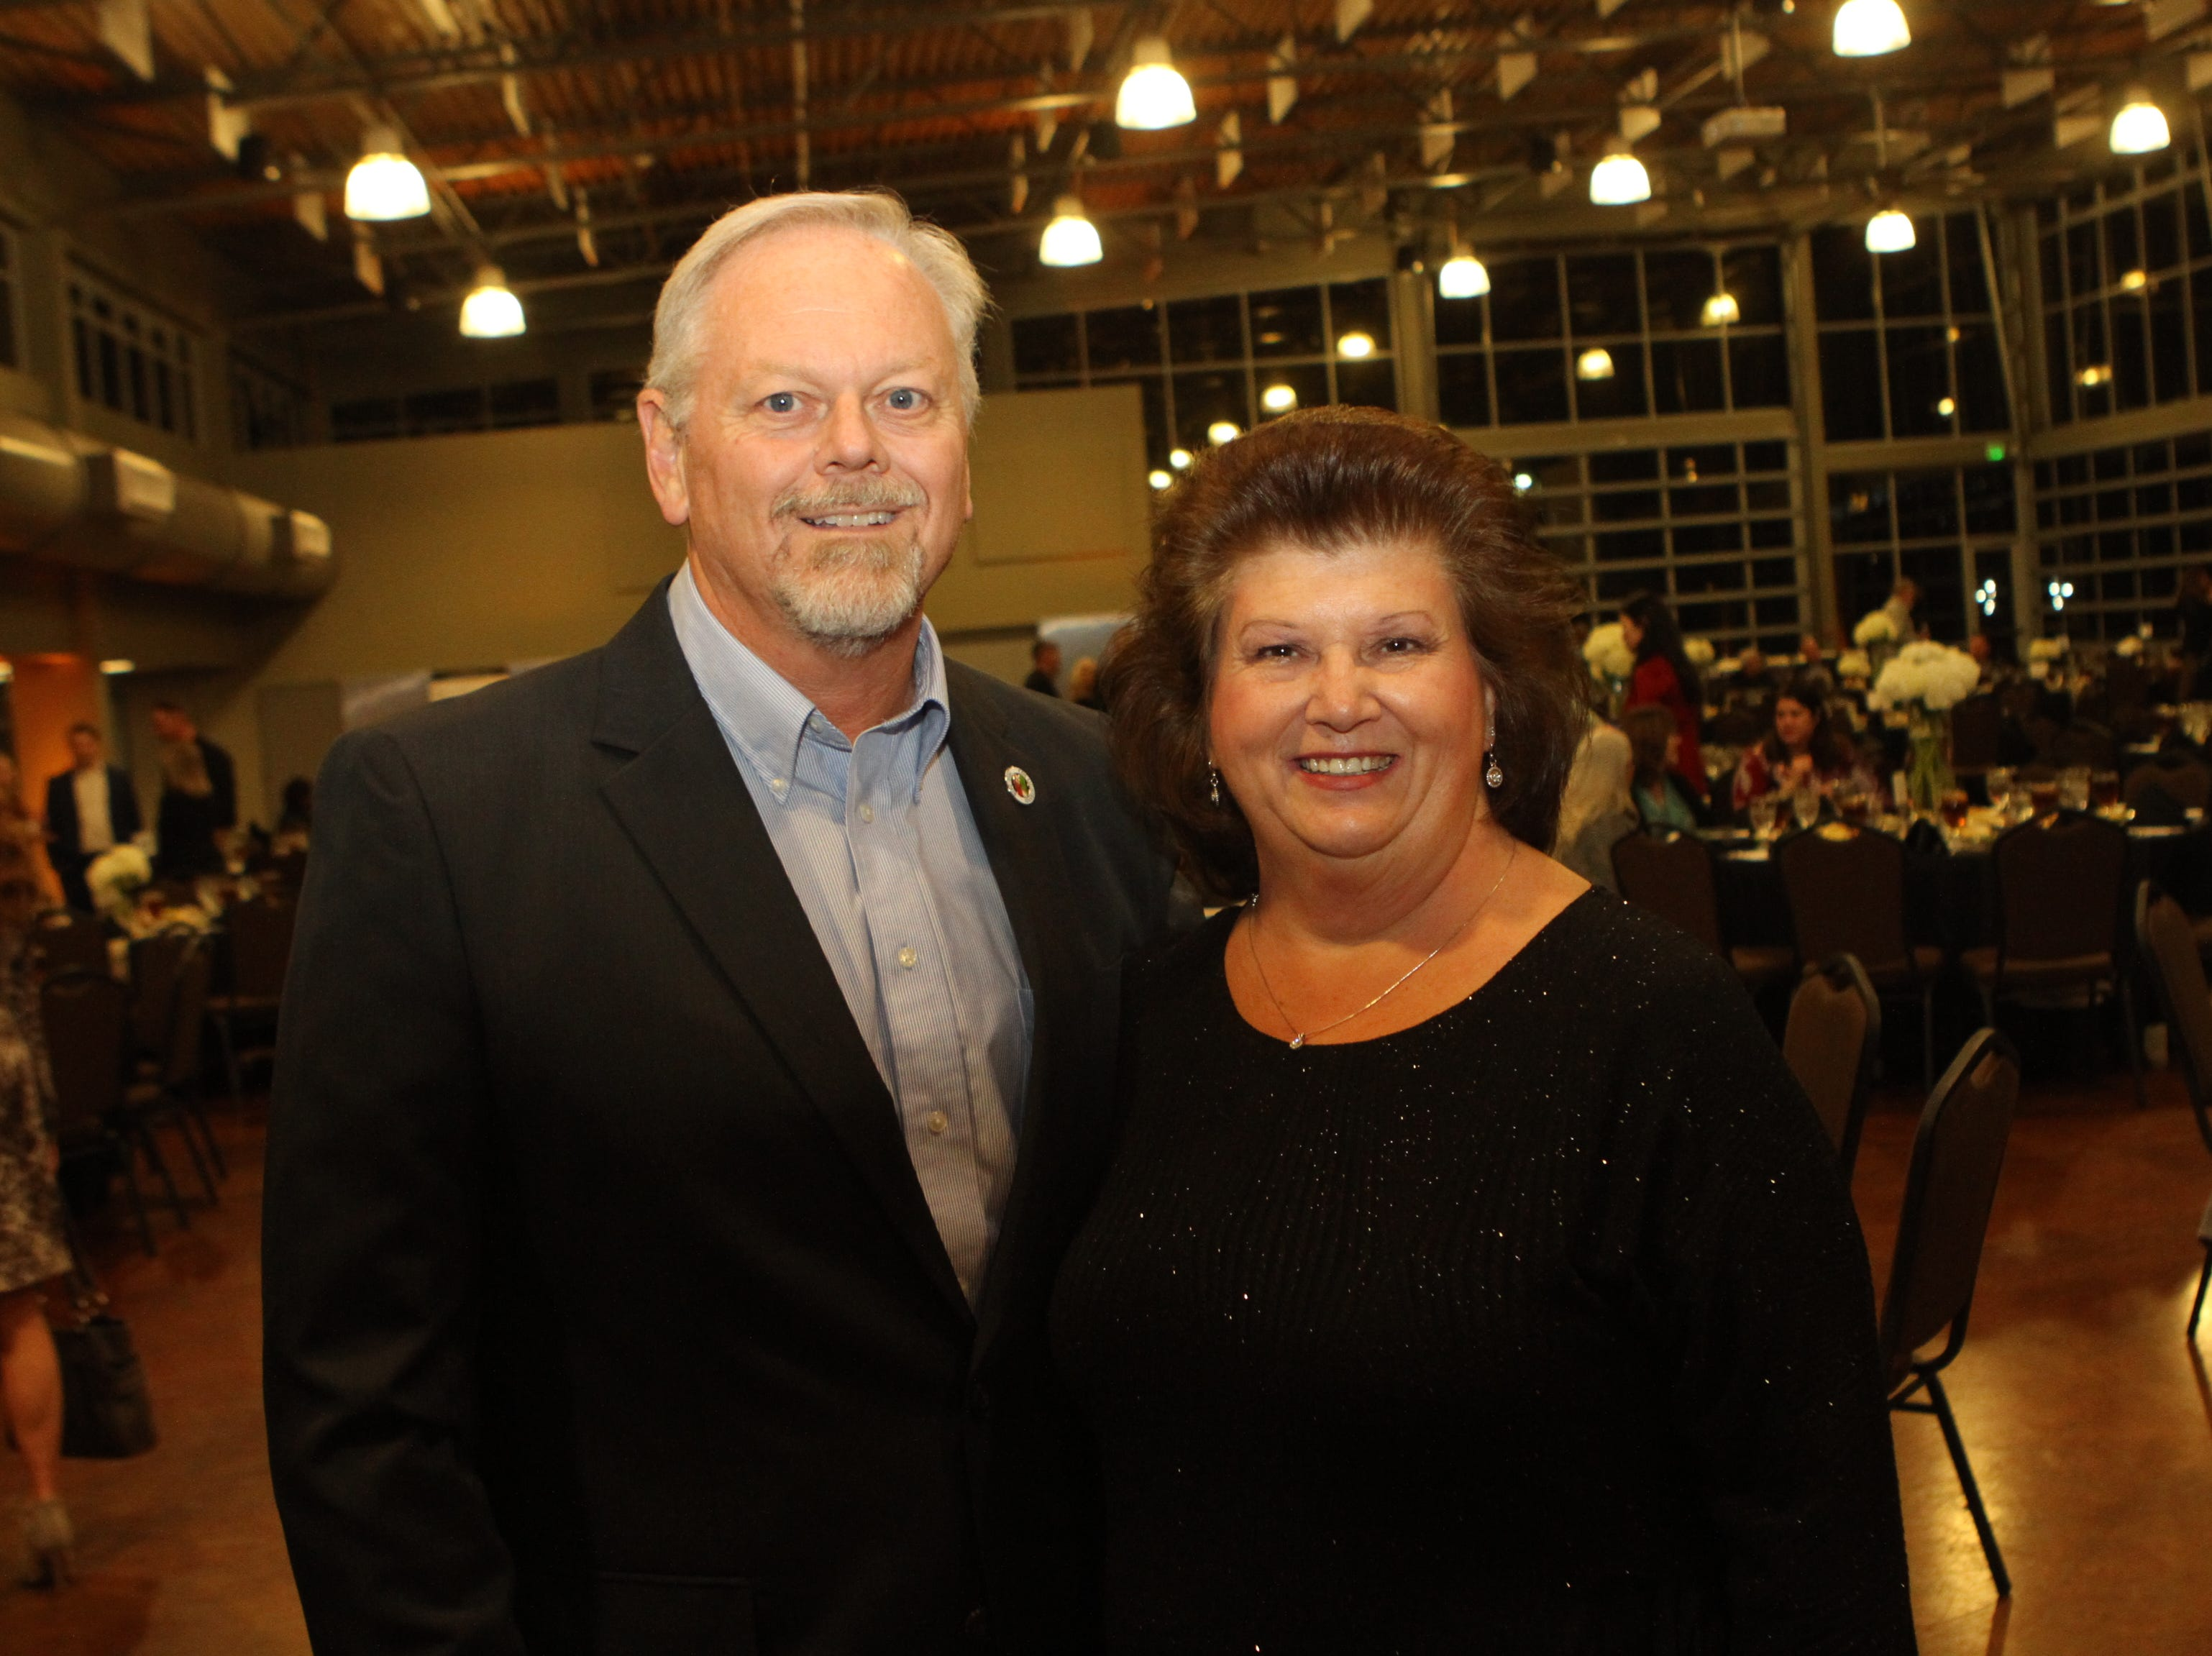 Brian and Kim Taylor at CMC Education Foundation's annual fundraiser Vision to Reality on Friday, November 2, 2018